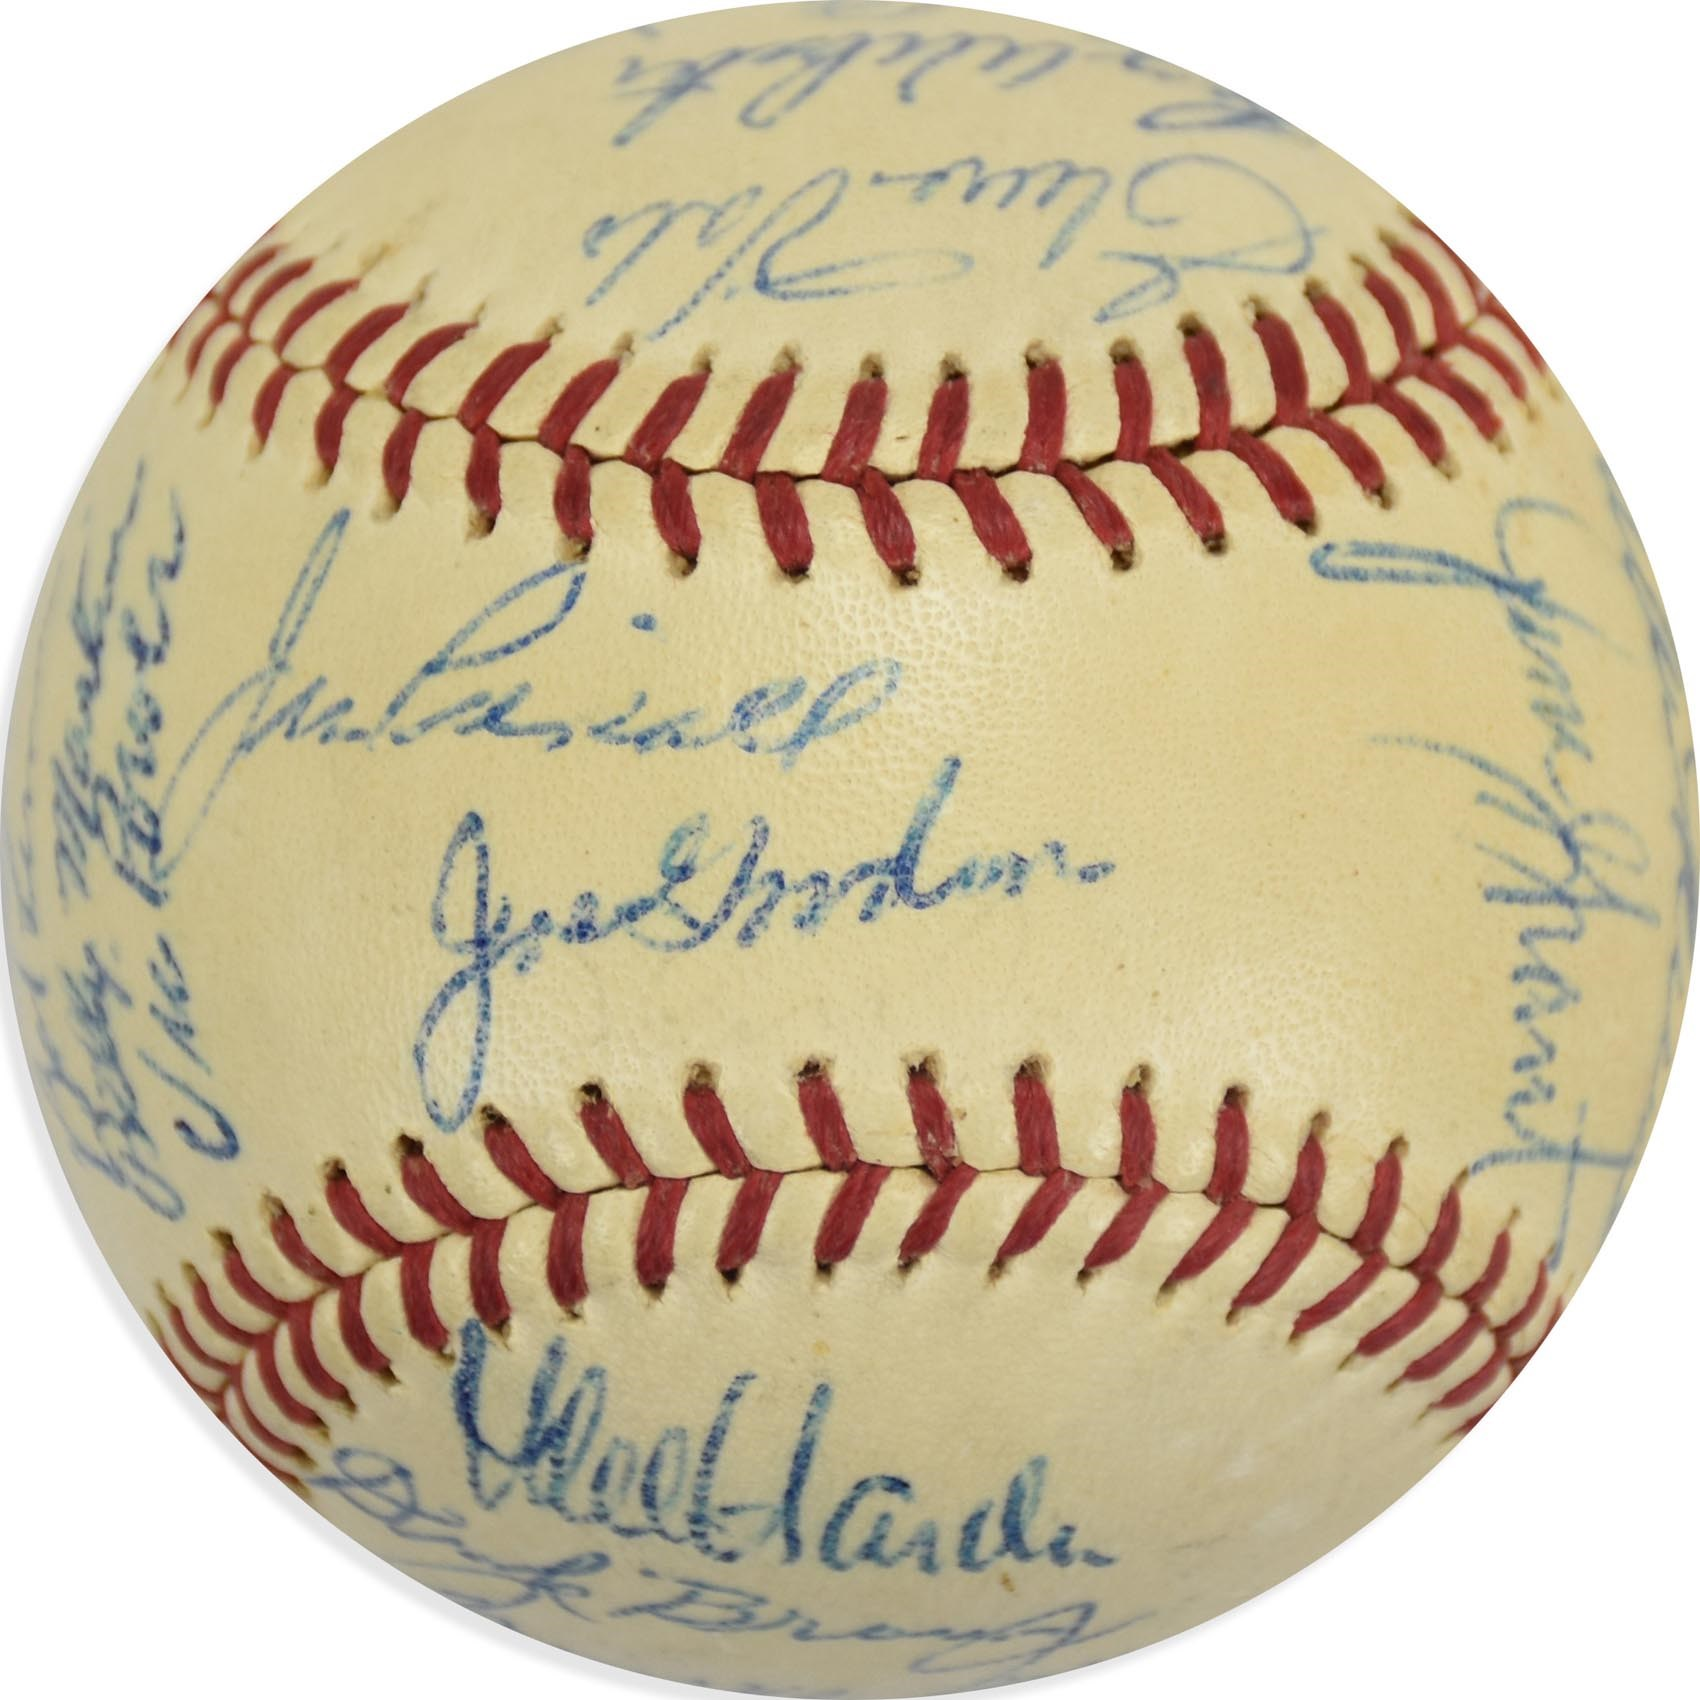 1959 Cleveland Indians Team Signed Baseball with Lemon and Billy Martin (PSA)